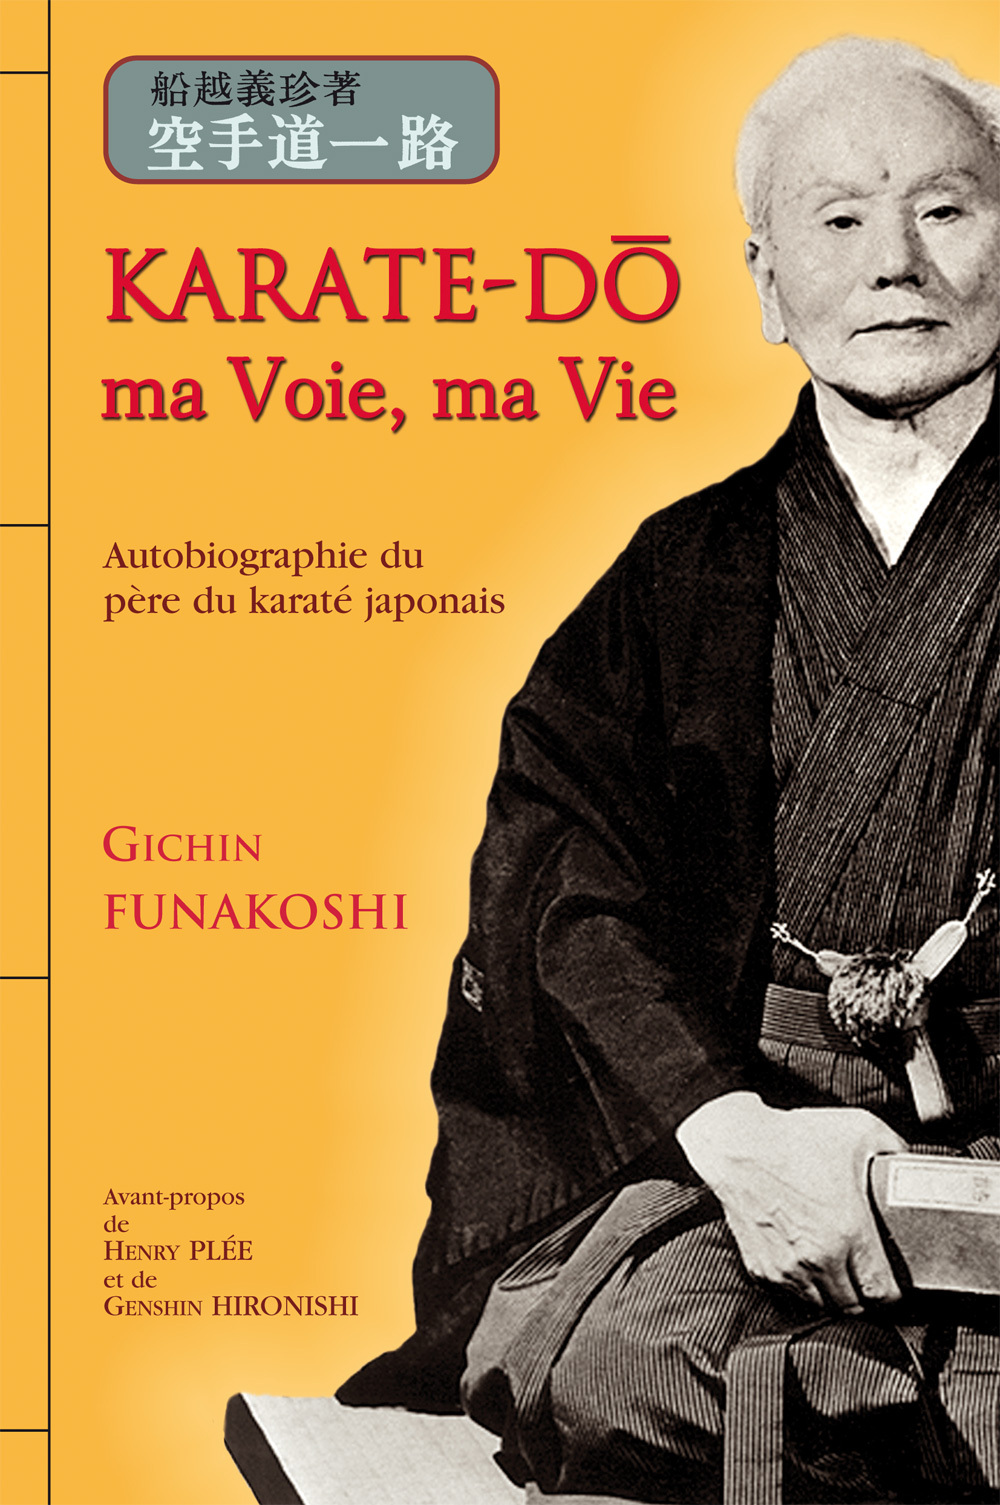 KARATE-DO, MA VOIE, MA VIE